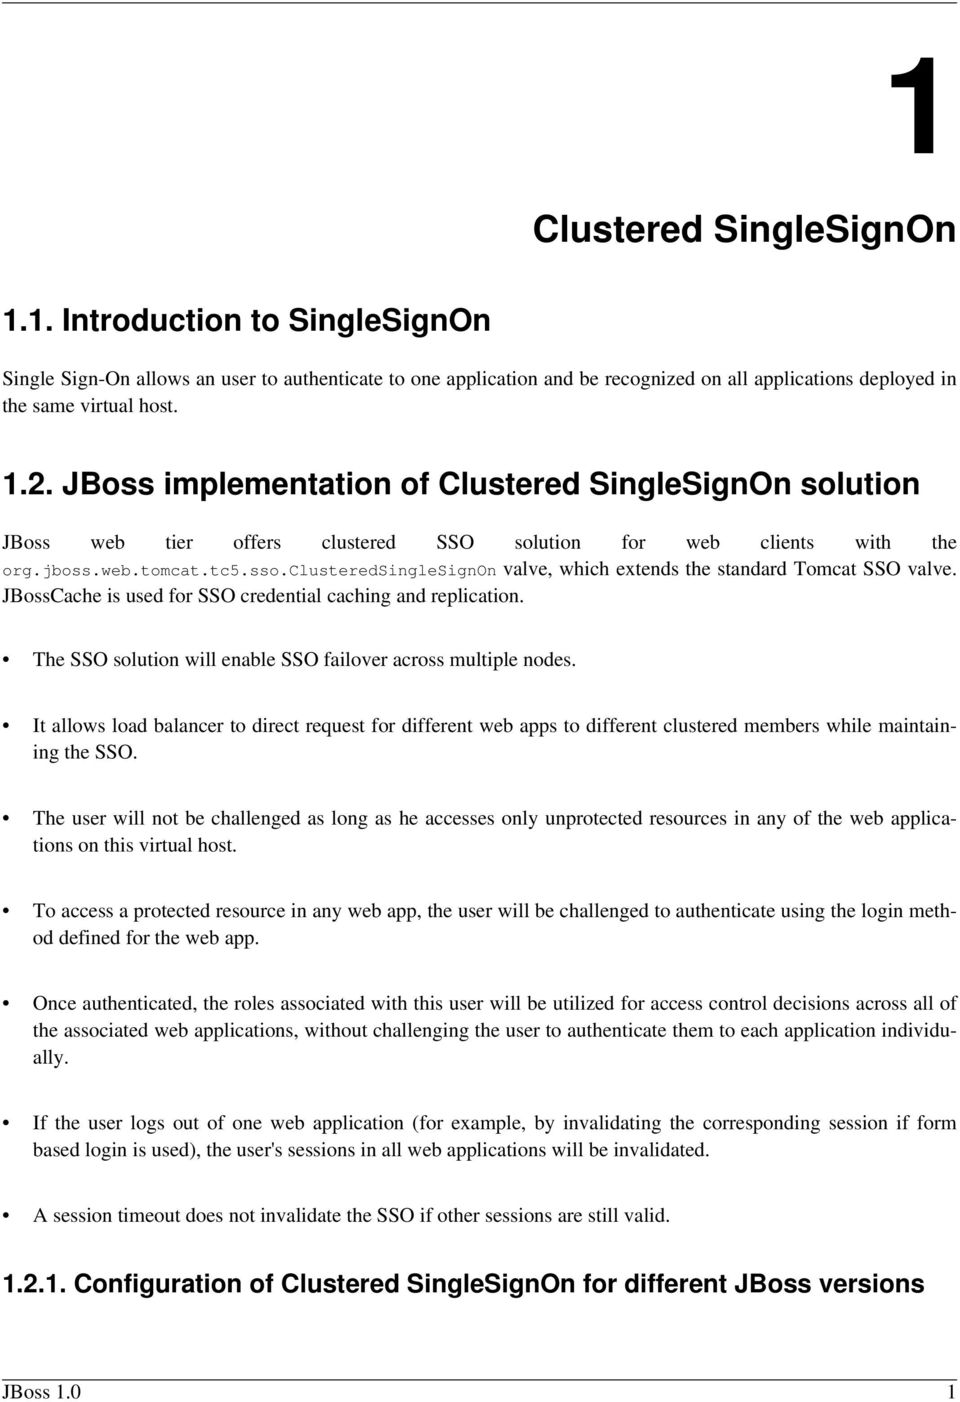 clusteredsinglesignon valve, which extends the standard Tomcat SSO valve. JBossCache is used for SSO credential caching and replication.